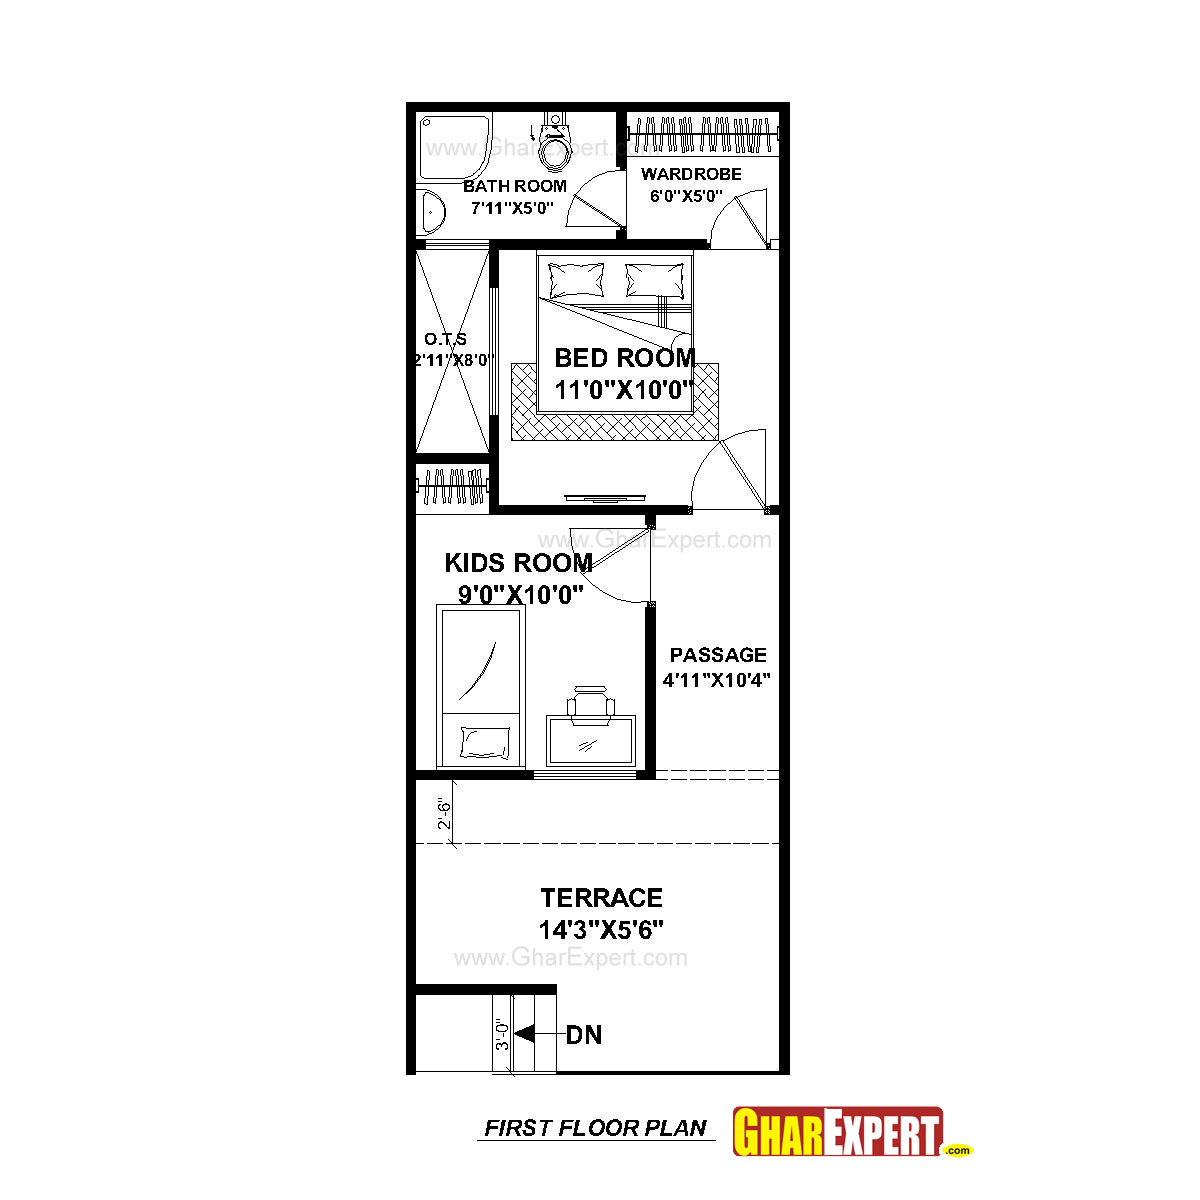 25 45 marla house map with Plan For 15 Feet By 50 Feet Plot  Plot Size 83 Square Yards  Plan Code 1666 on 7 Marla House Plans in addition Ford as well Eden gardens eden garden executive block house is available for sale 4902987 10765 1 likewise Plan For 22 Feet By 42 Feet Plot  Plot Size 103 Square Yards  Plan Code 1328 together with Bahria nasheman bahria nasheman zinia brand new house is available for sale 4985440 4511 1.